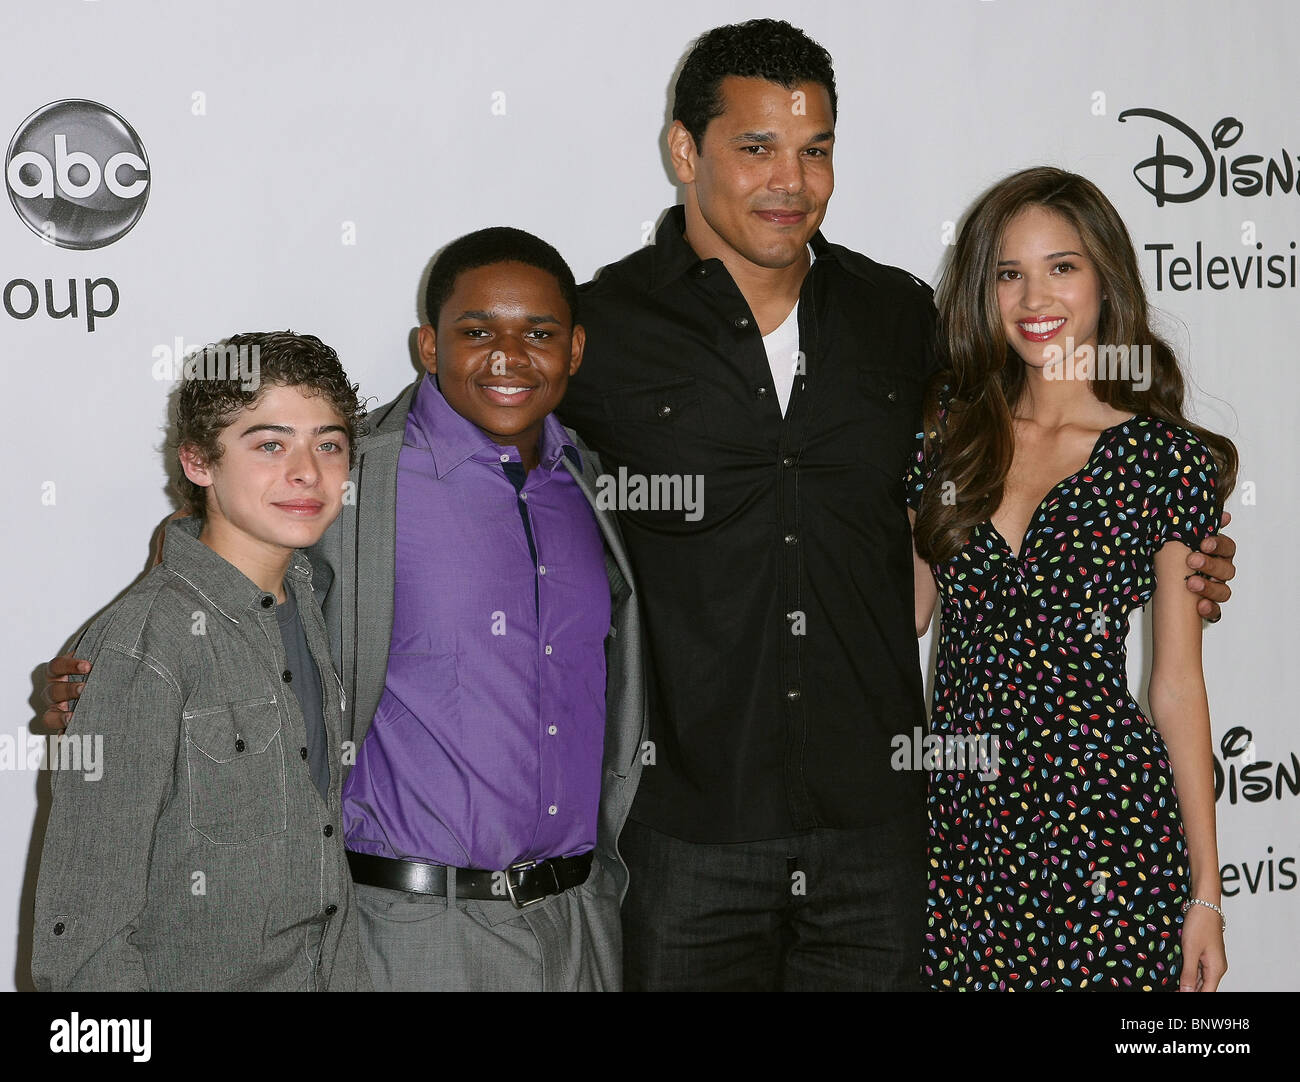 Geno Segers And Kelsey Chow High Resolution Stock Photography And Images Alamy Geno segers, who plays chayton littlestone on banshee, will be in the next teen wolf episode. https www alamy com stock photo ryan ochoa doc shaw geno segers kelsey chow disney abc television 30674484 html